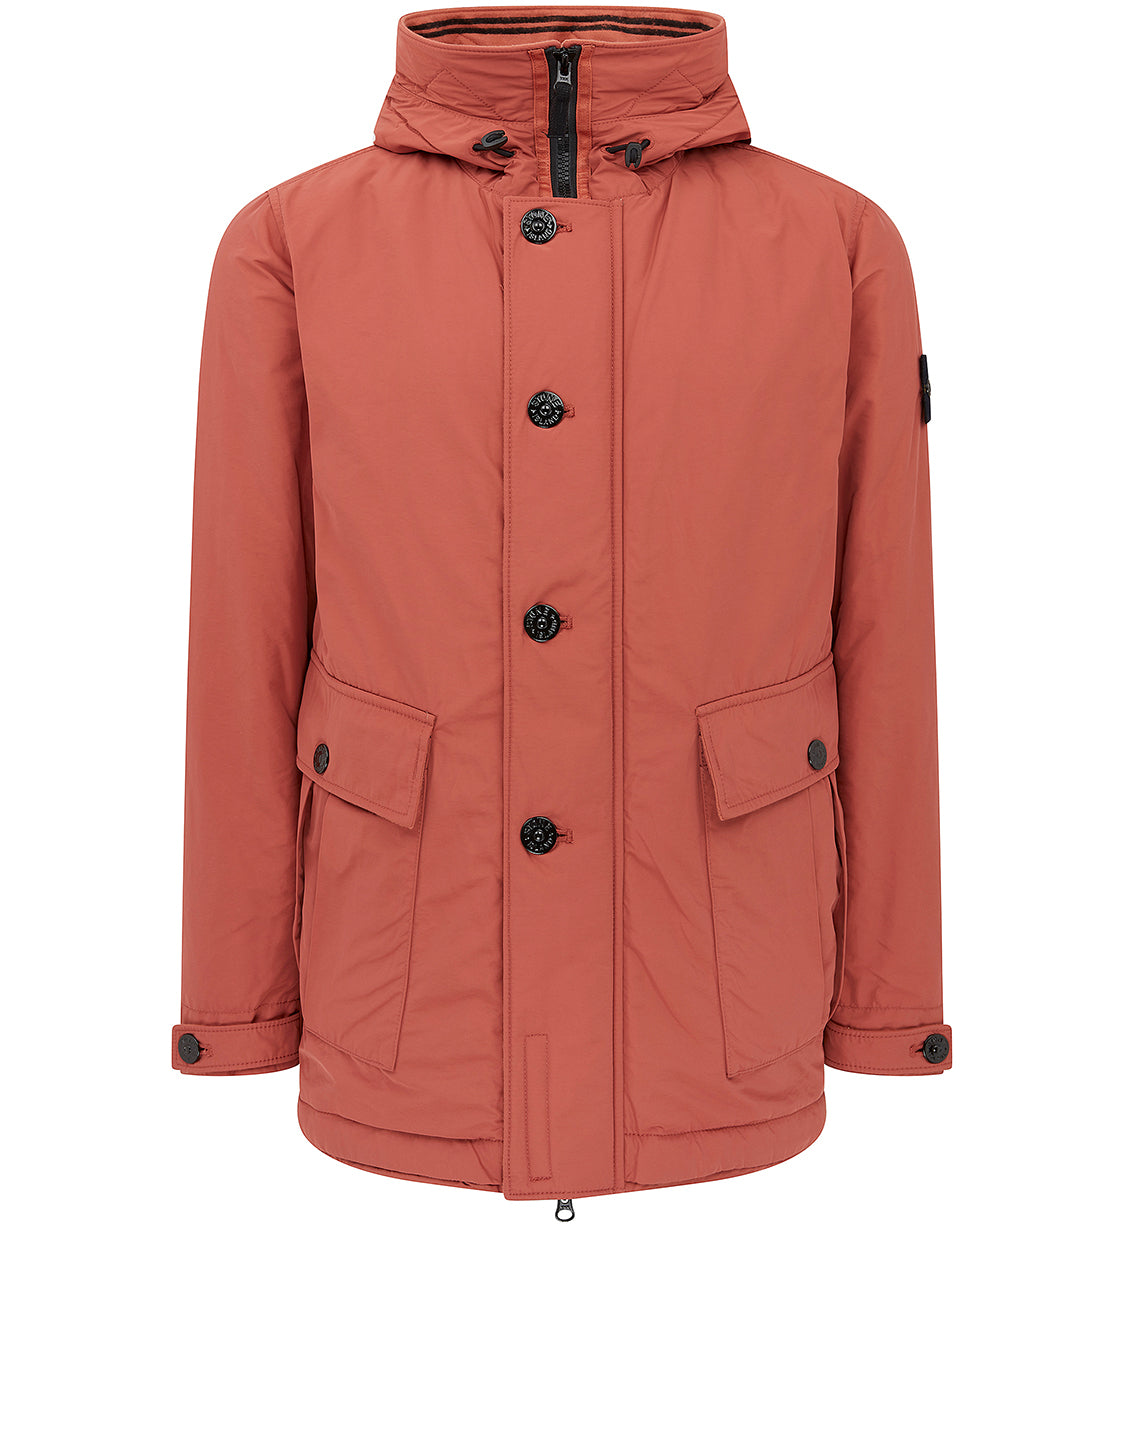 40626 MICRO REPS WITH PRIMALOFT® INSULATION TECHNOLOGY Jacket in Rust